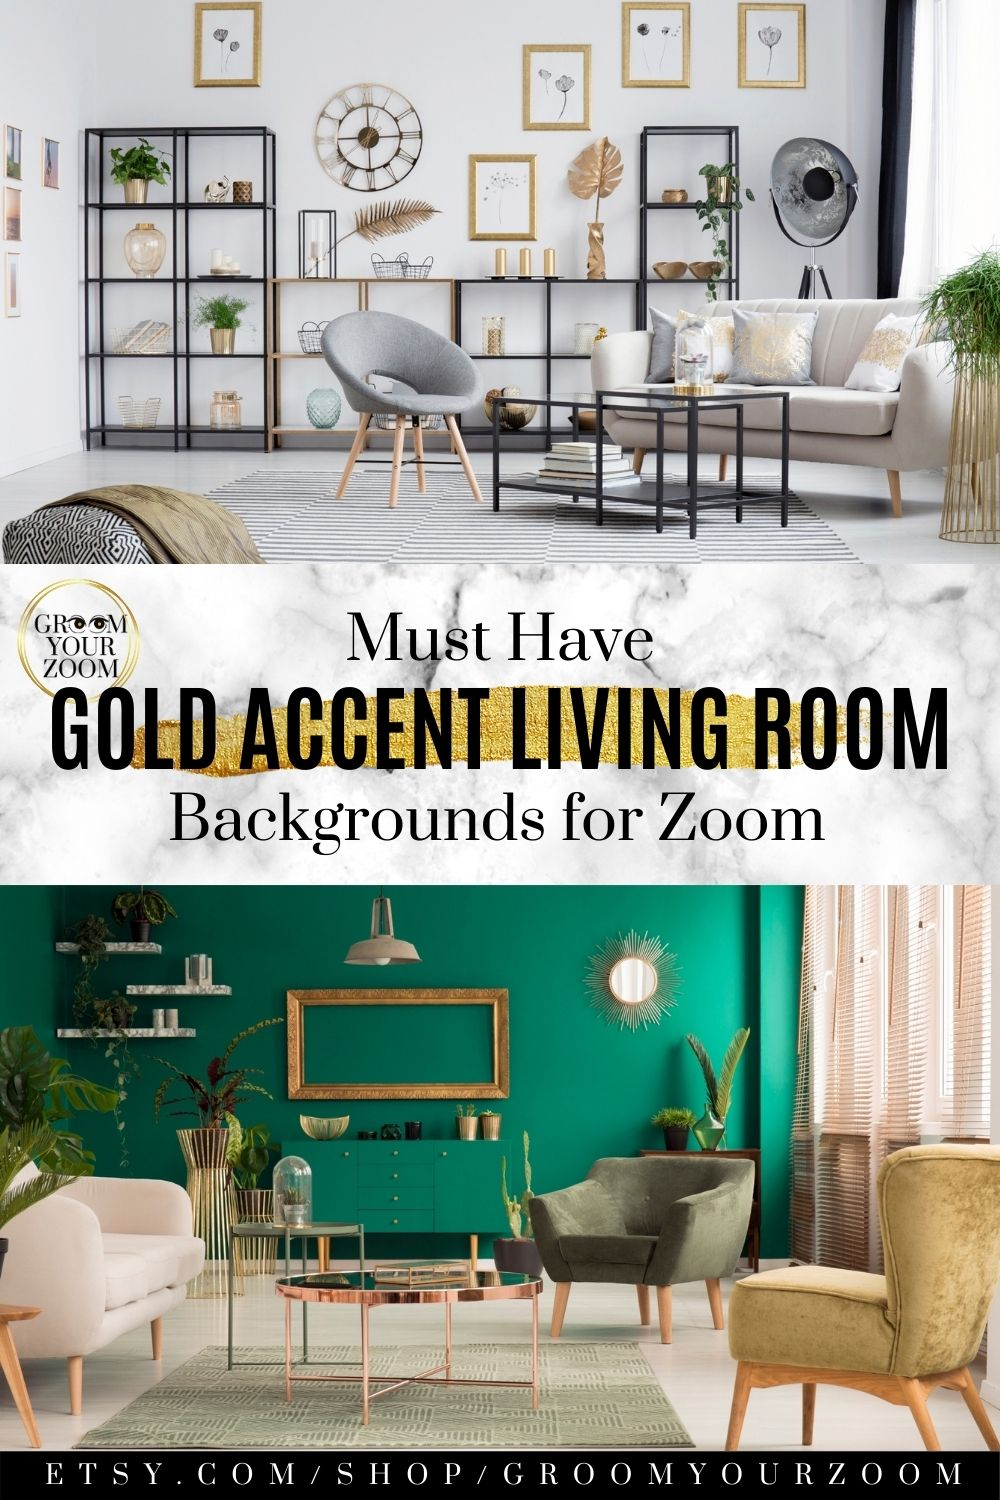 Gold Accents Living Room Zoom Background 4 Virtual Etsy In 2020 Gold Accents Living Room Living Room Background Living Room Accents